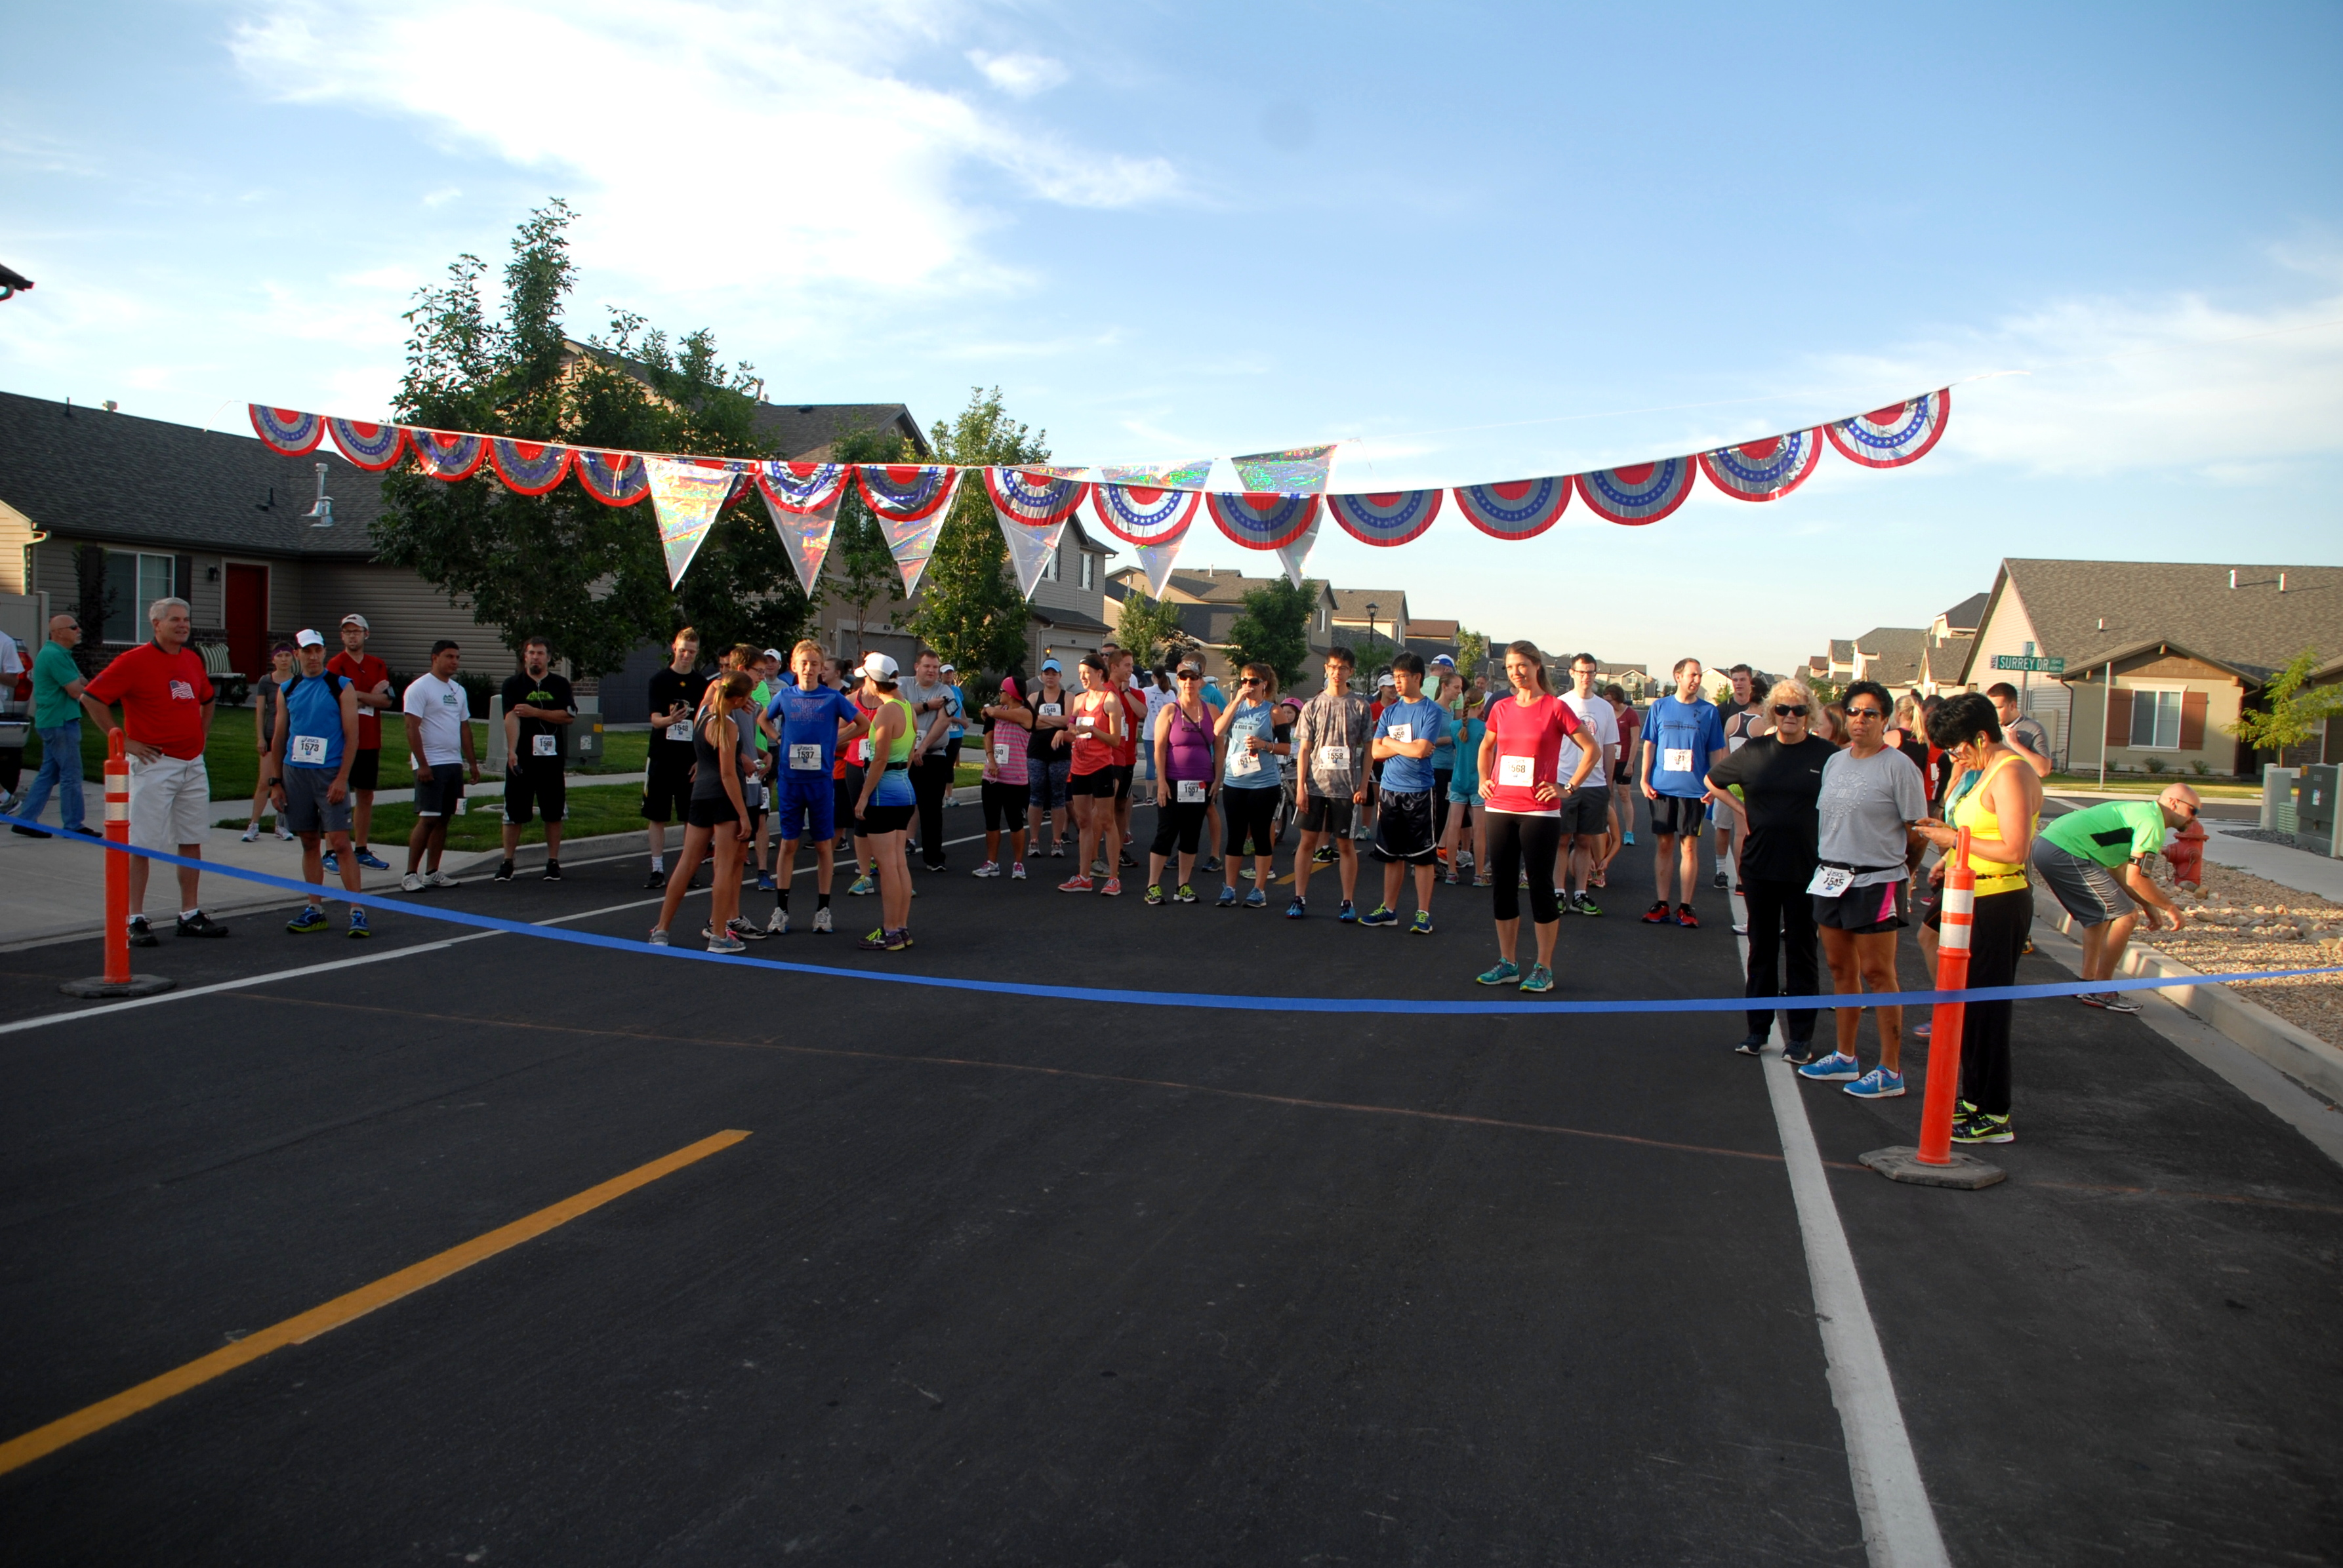 Gathering at the Starting Line